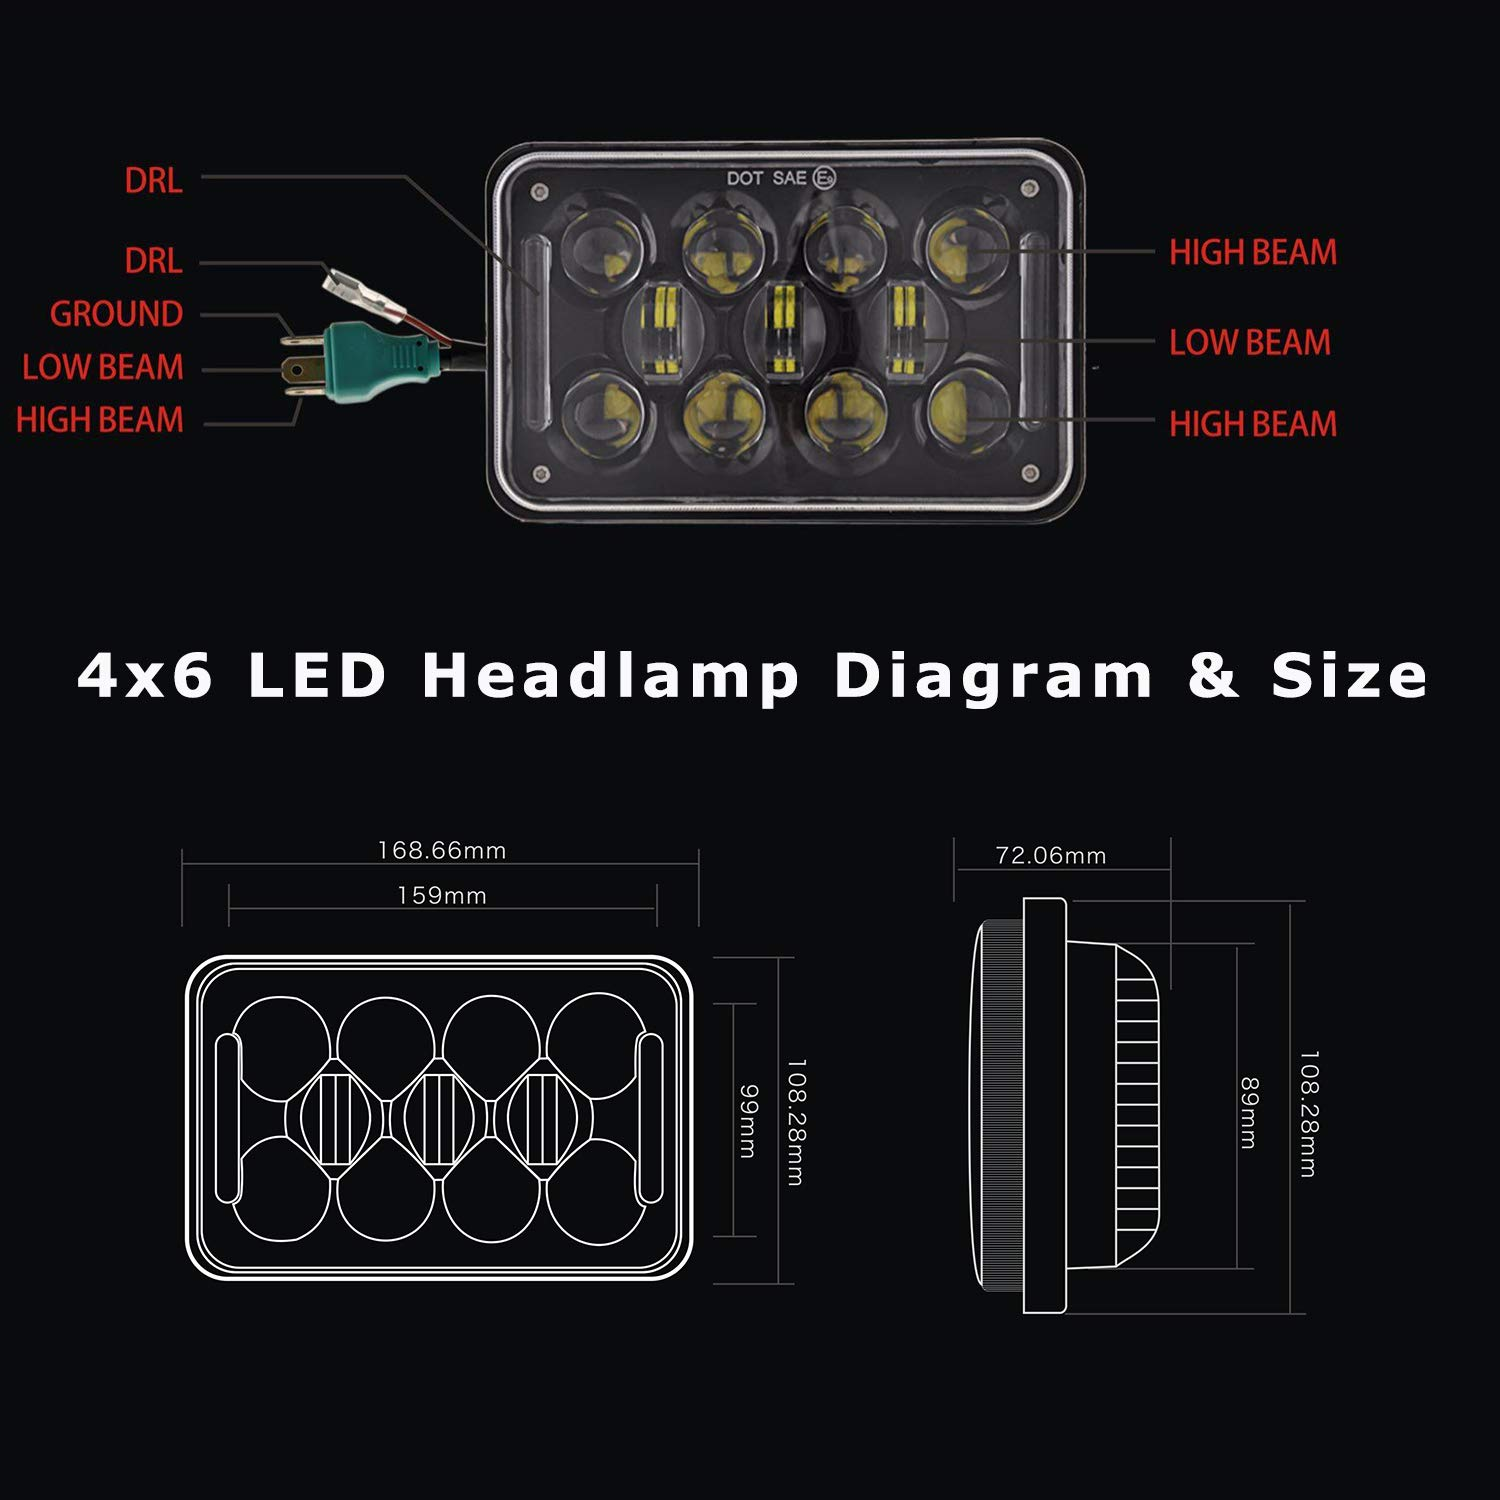 New Osram 4x6 Inch 60w Led Headlights Rectangular Wiring Diagram Free Download Schematic Replacement H4651 H4652 H4656 H4666 H6545 With Drl For Peterbil Kenworth Freightinger Ford